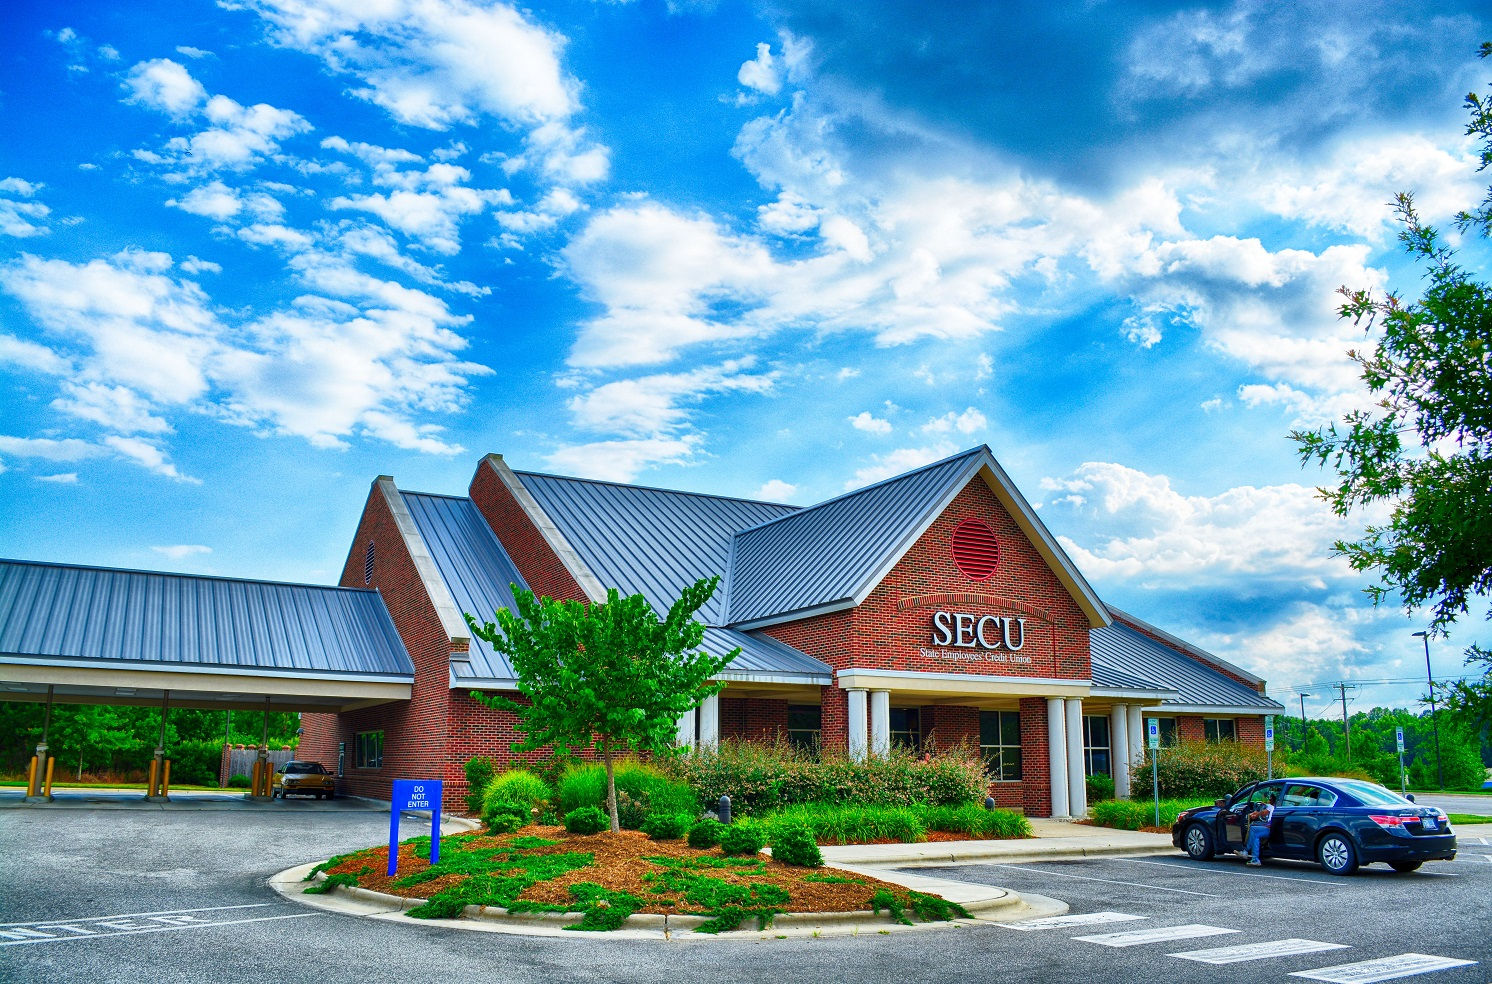 Ford Dealerships In Nc >> Pittsboro North Carolina in HDR 2014 - 2015